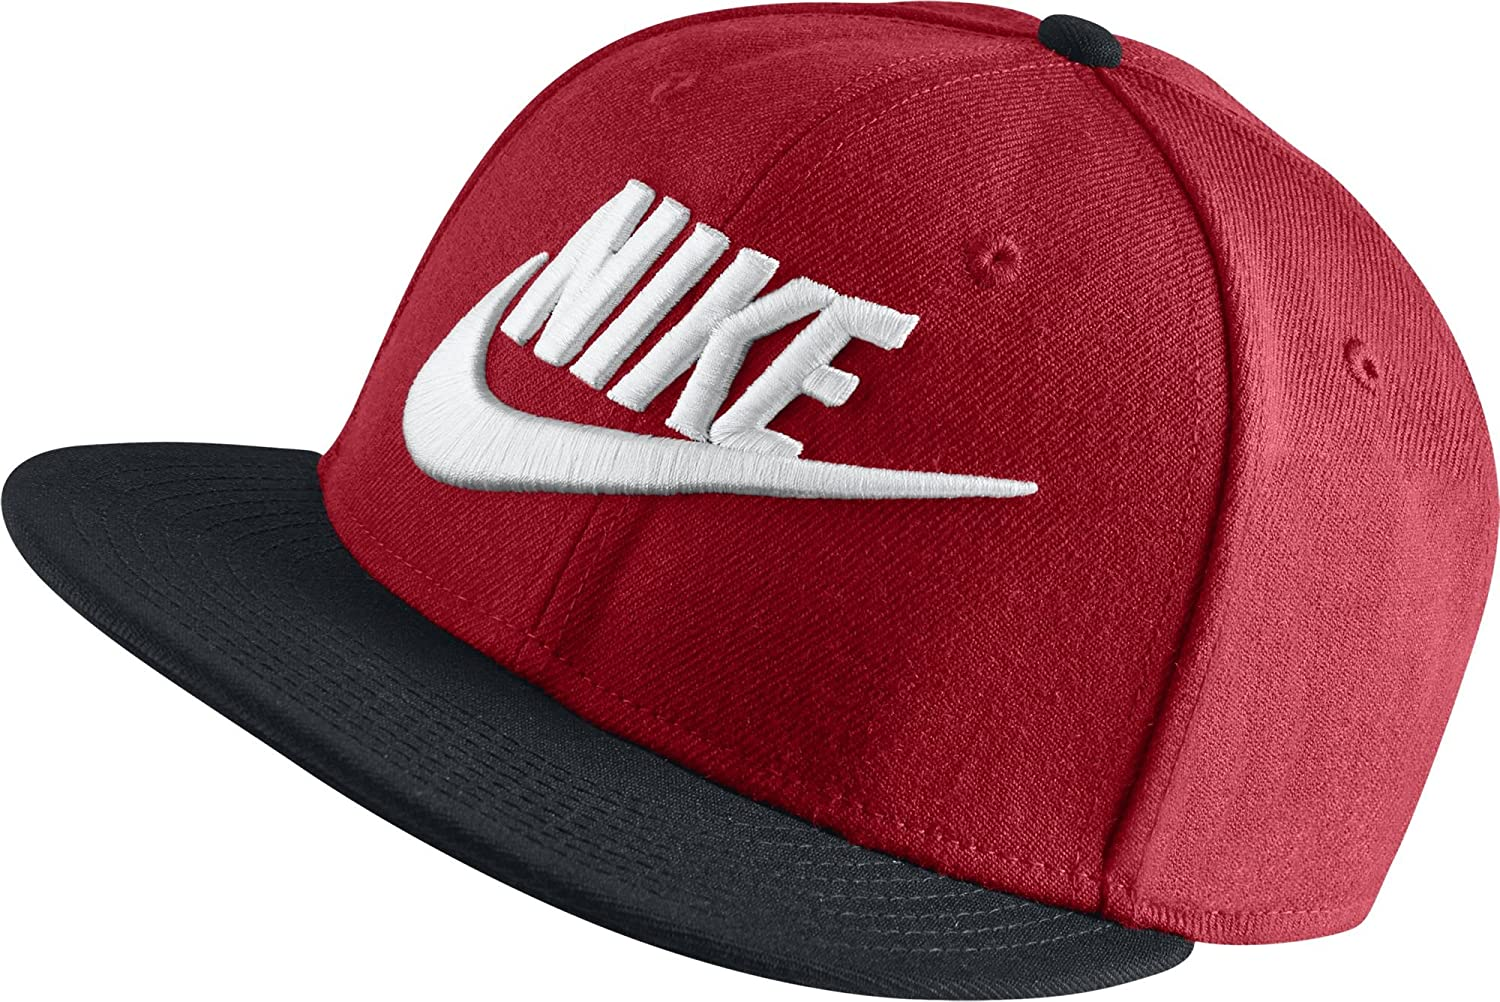 b3025d1da75 Nike True Futura Cap  Amazon.co.uk  Sports   Outdoors